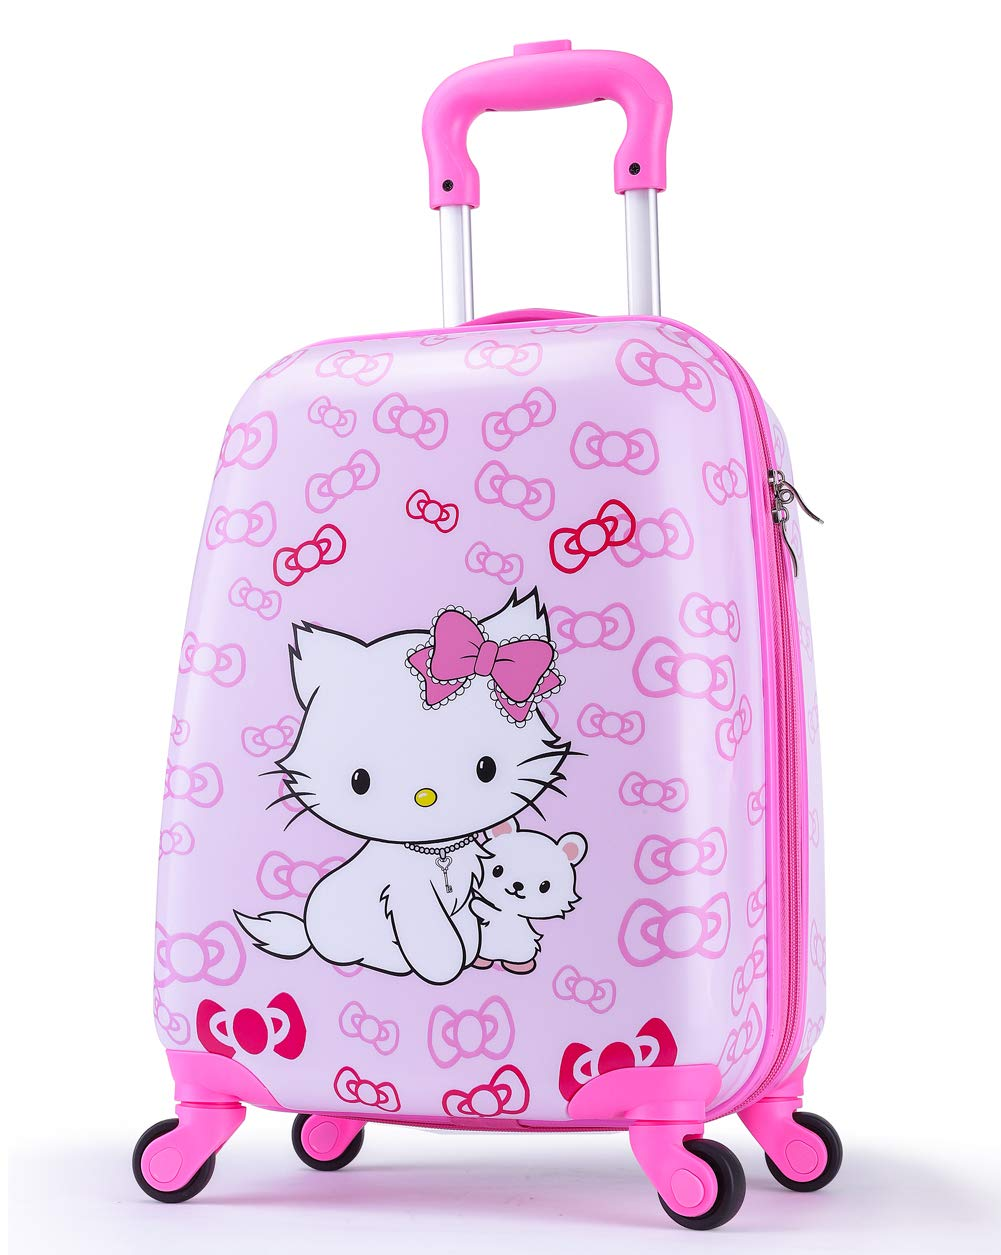 Girls Suitcase Hardshell Spinner Wheels - Kids Luggage 18 inch Carry On Bowknot Cat Travel Trolley LeLeTian by LeLeTian